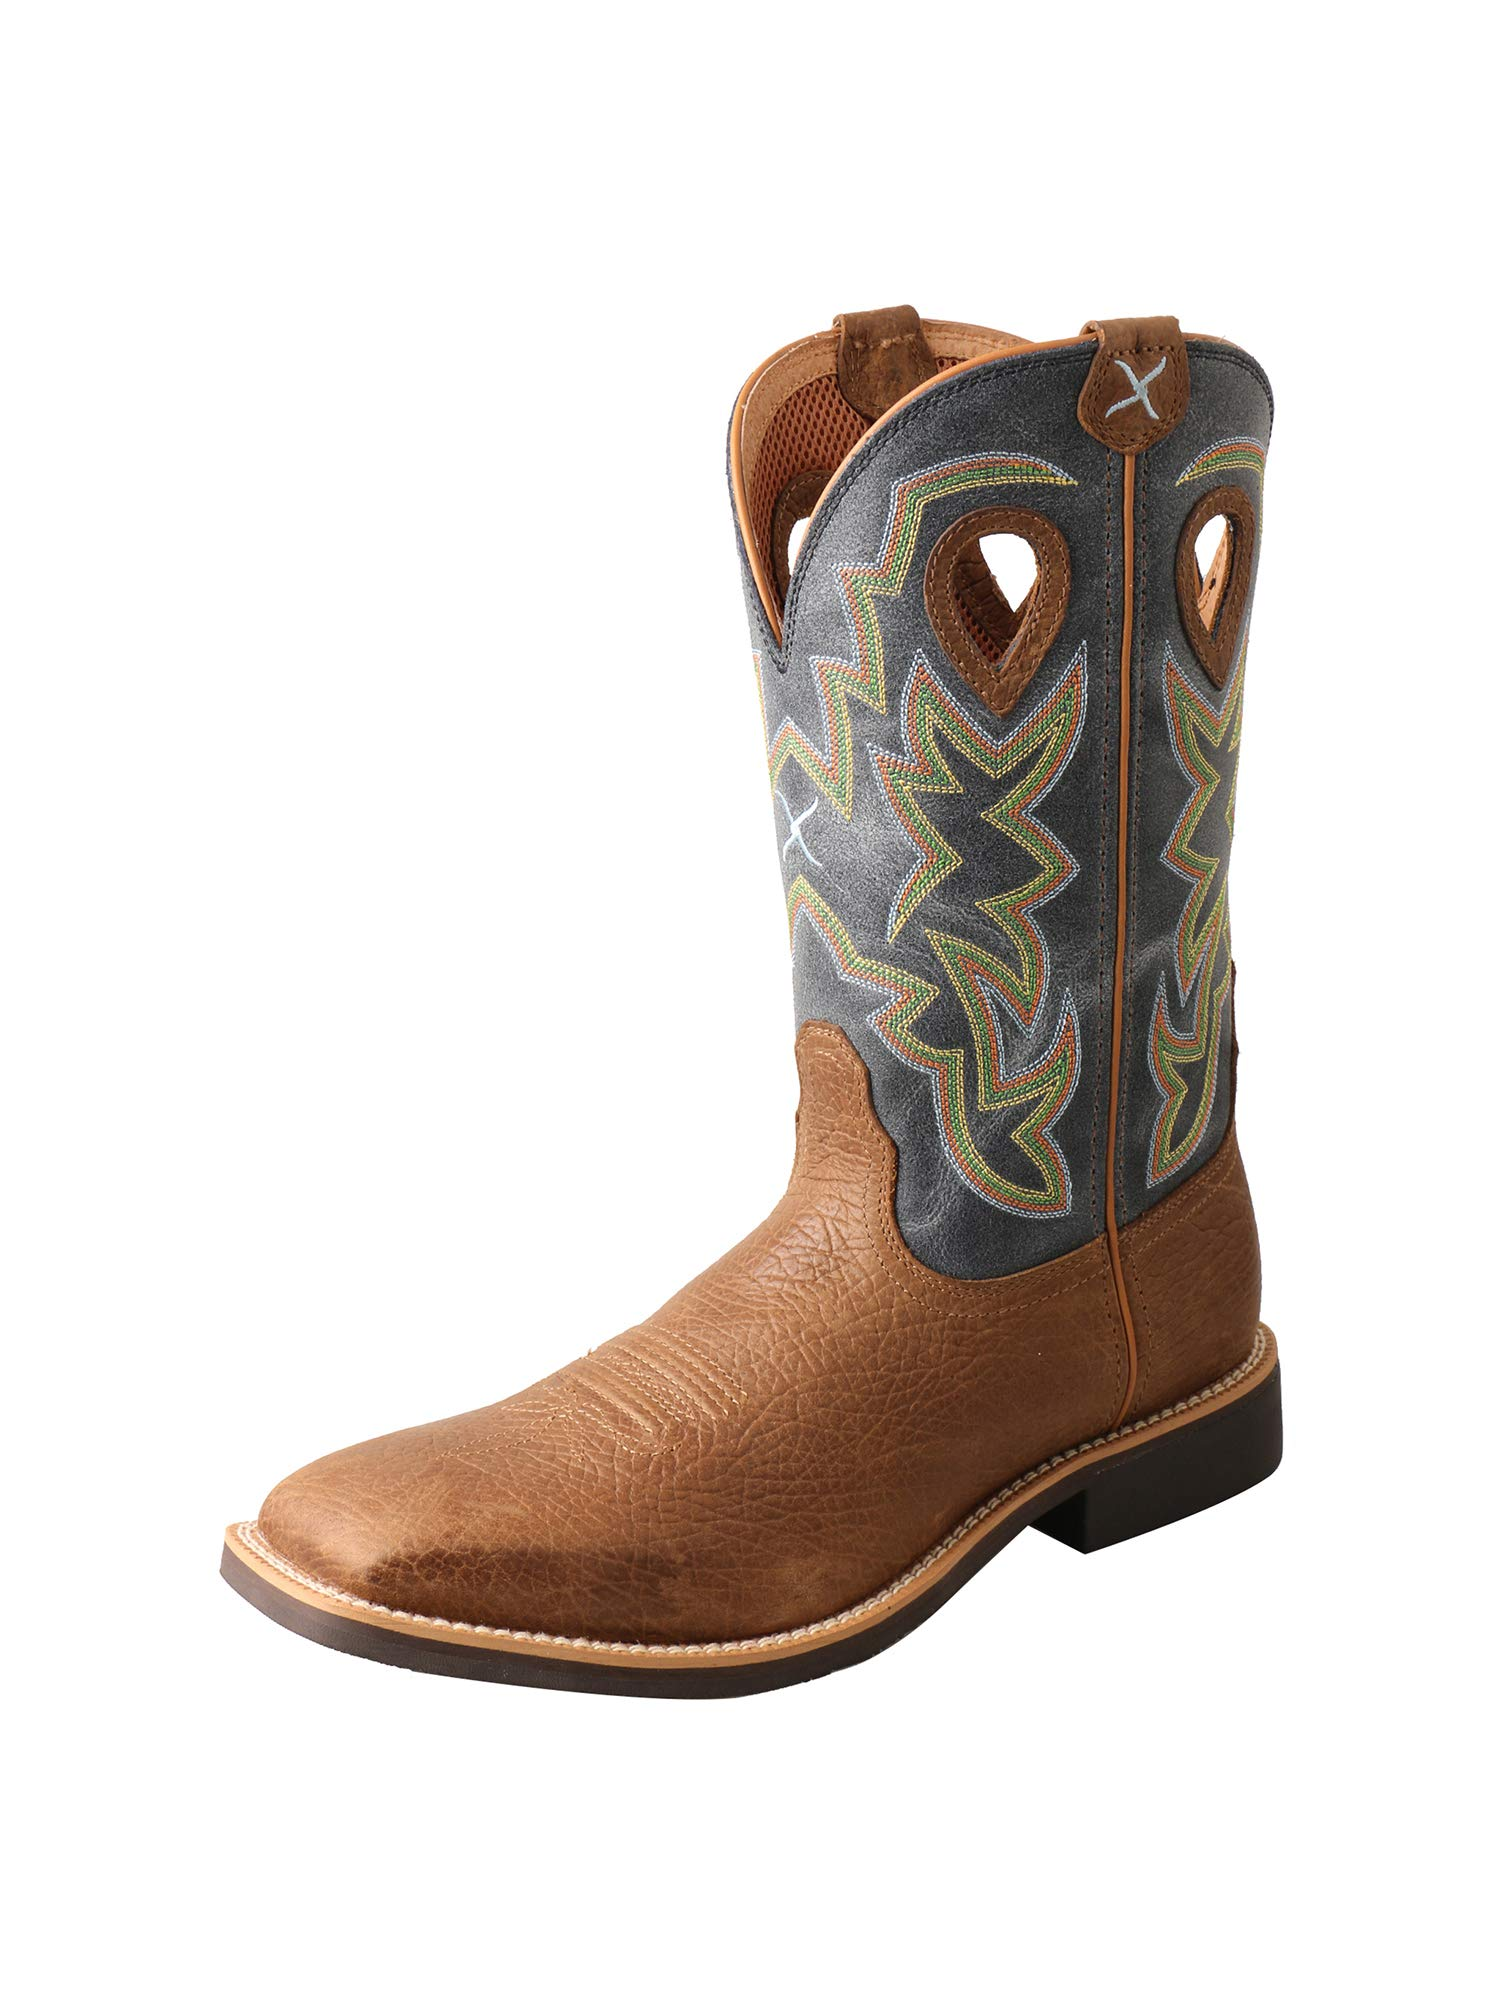 Twisted X Men's Top Hand Western Boot Wide Square Toe Distressed Brown 9 D by Twisted X